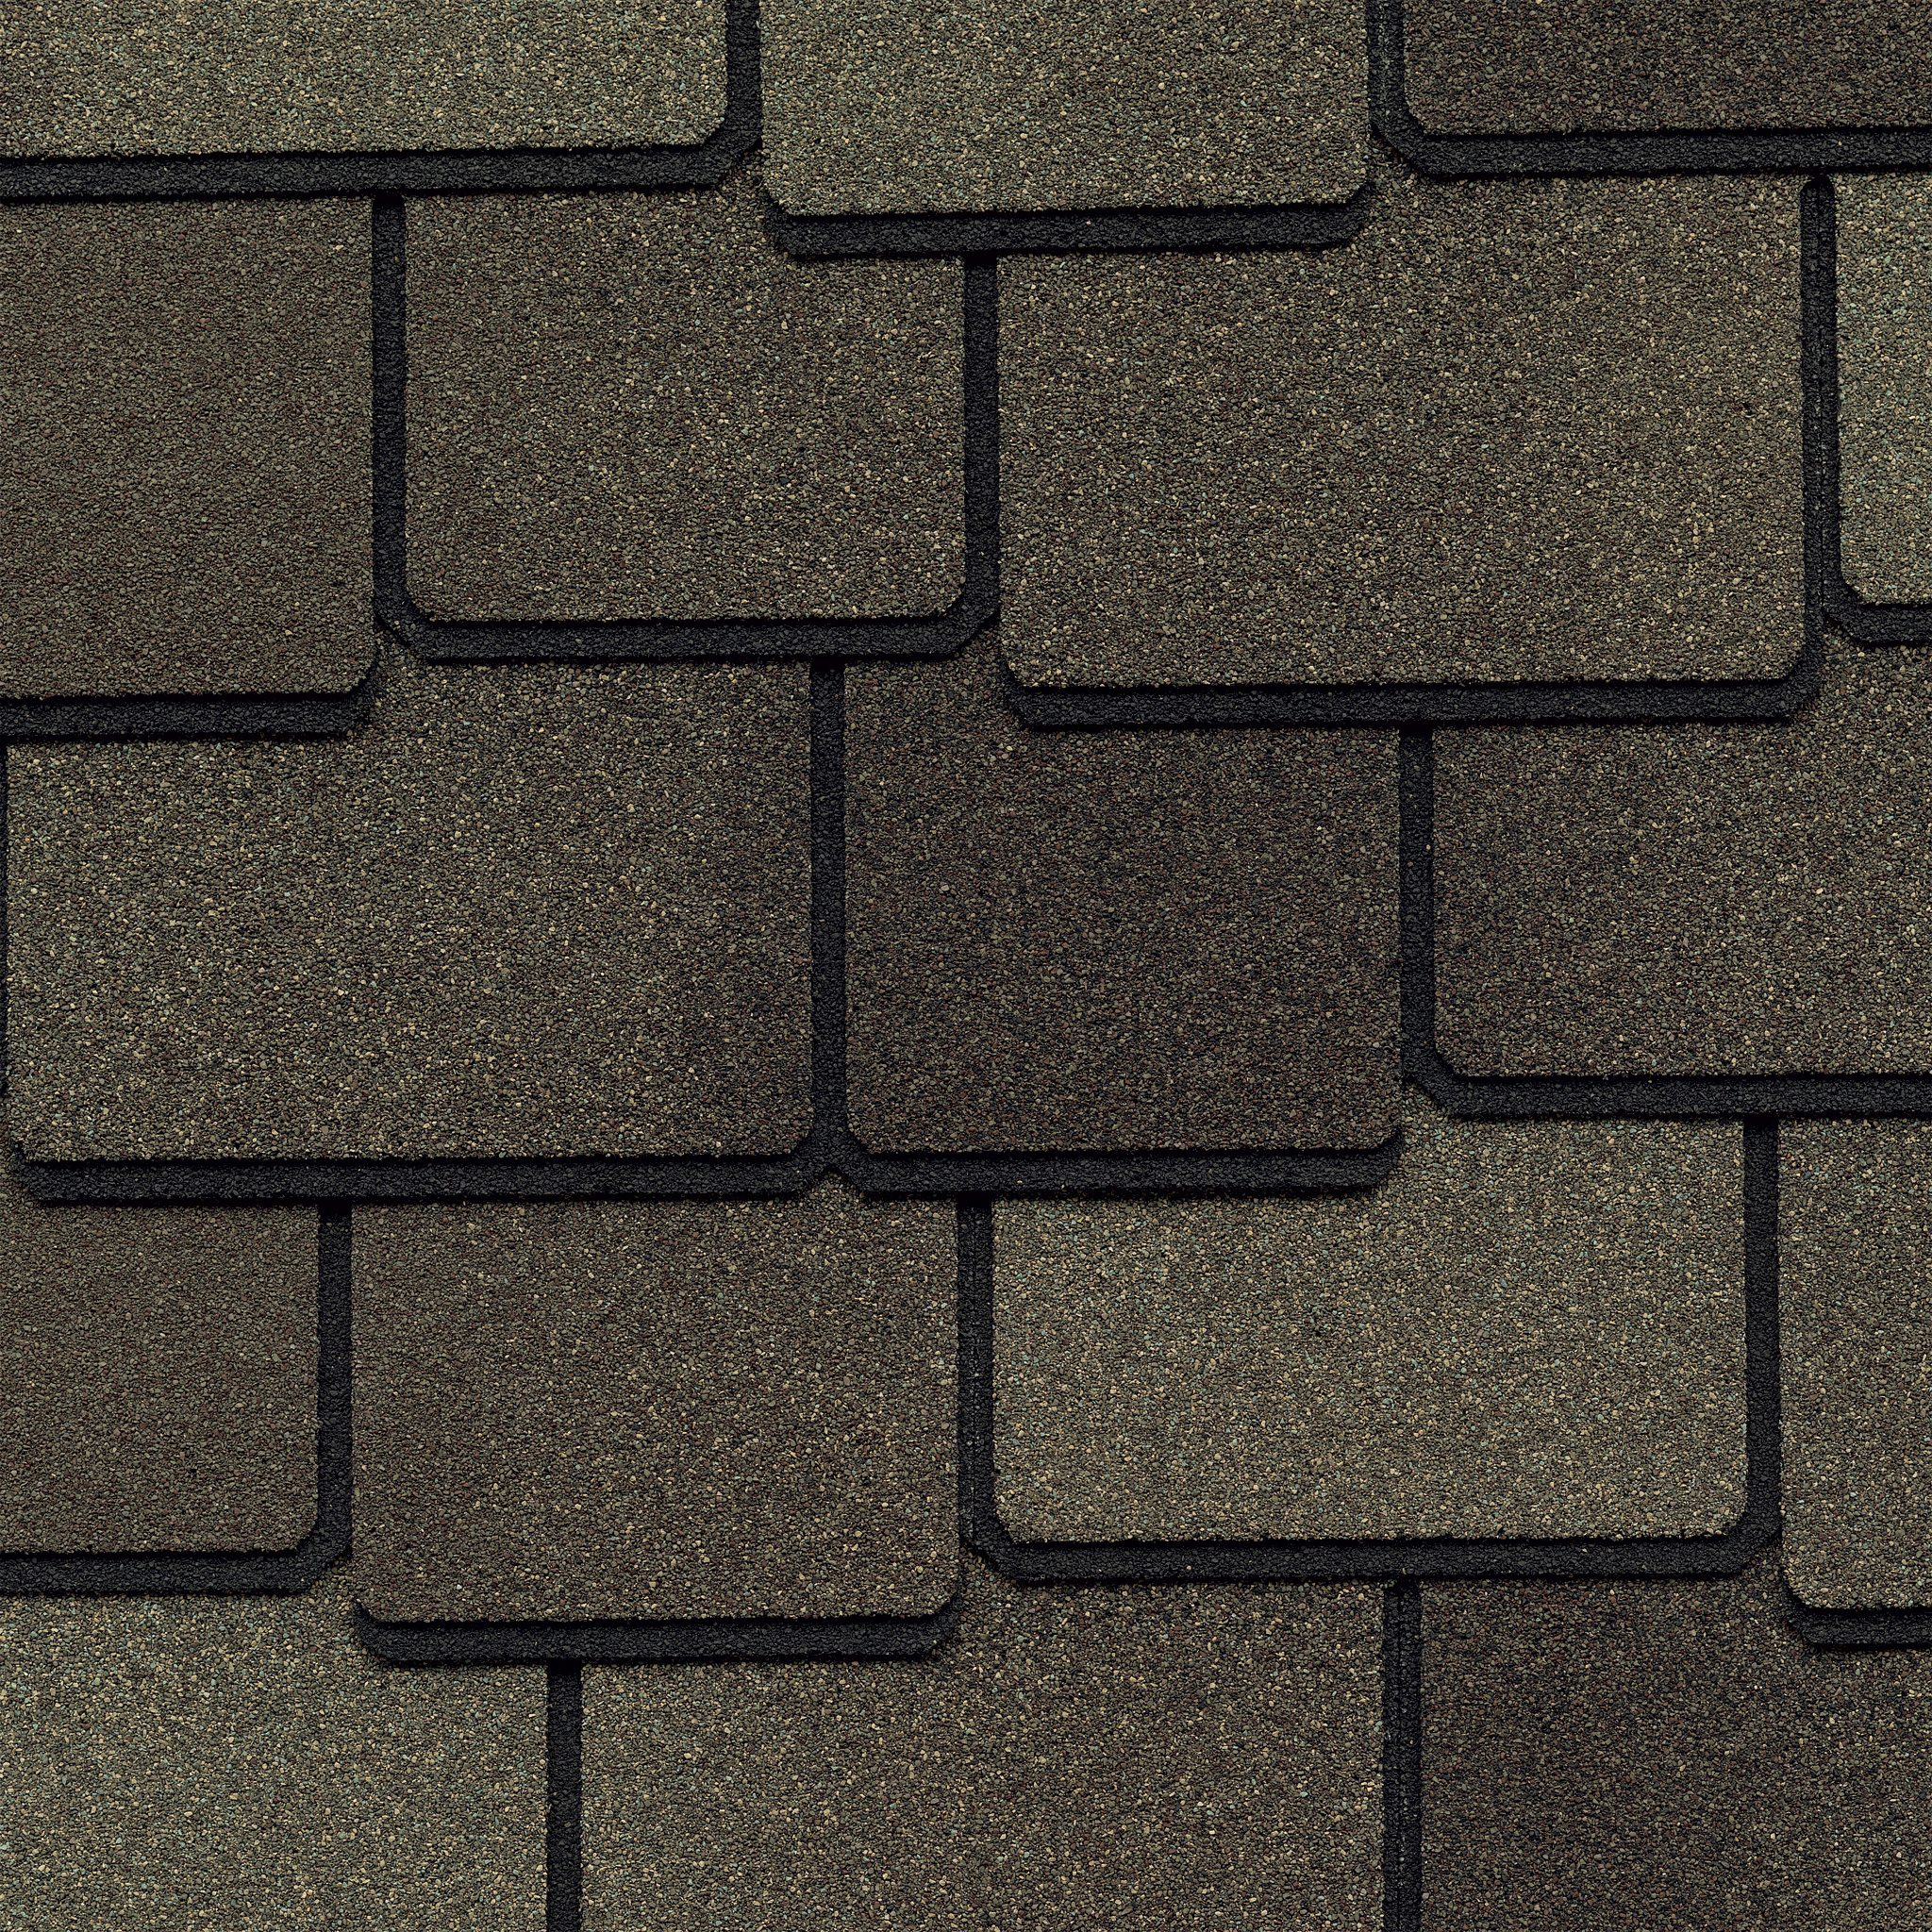 Close up photo of GAF's Woodland Cedarwood Abbey shingle swatch